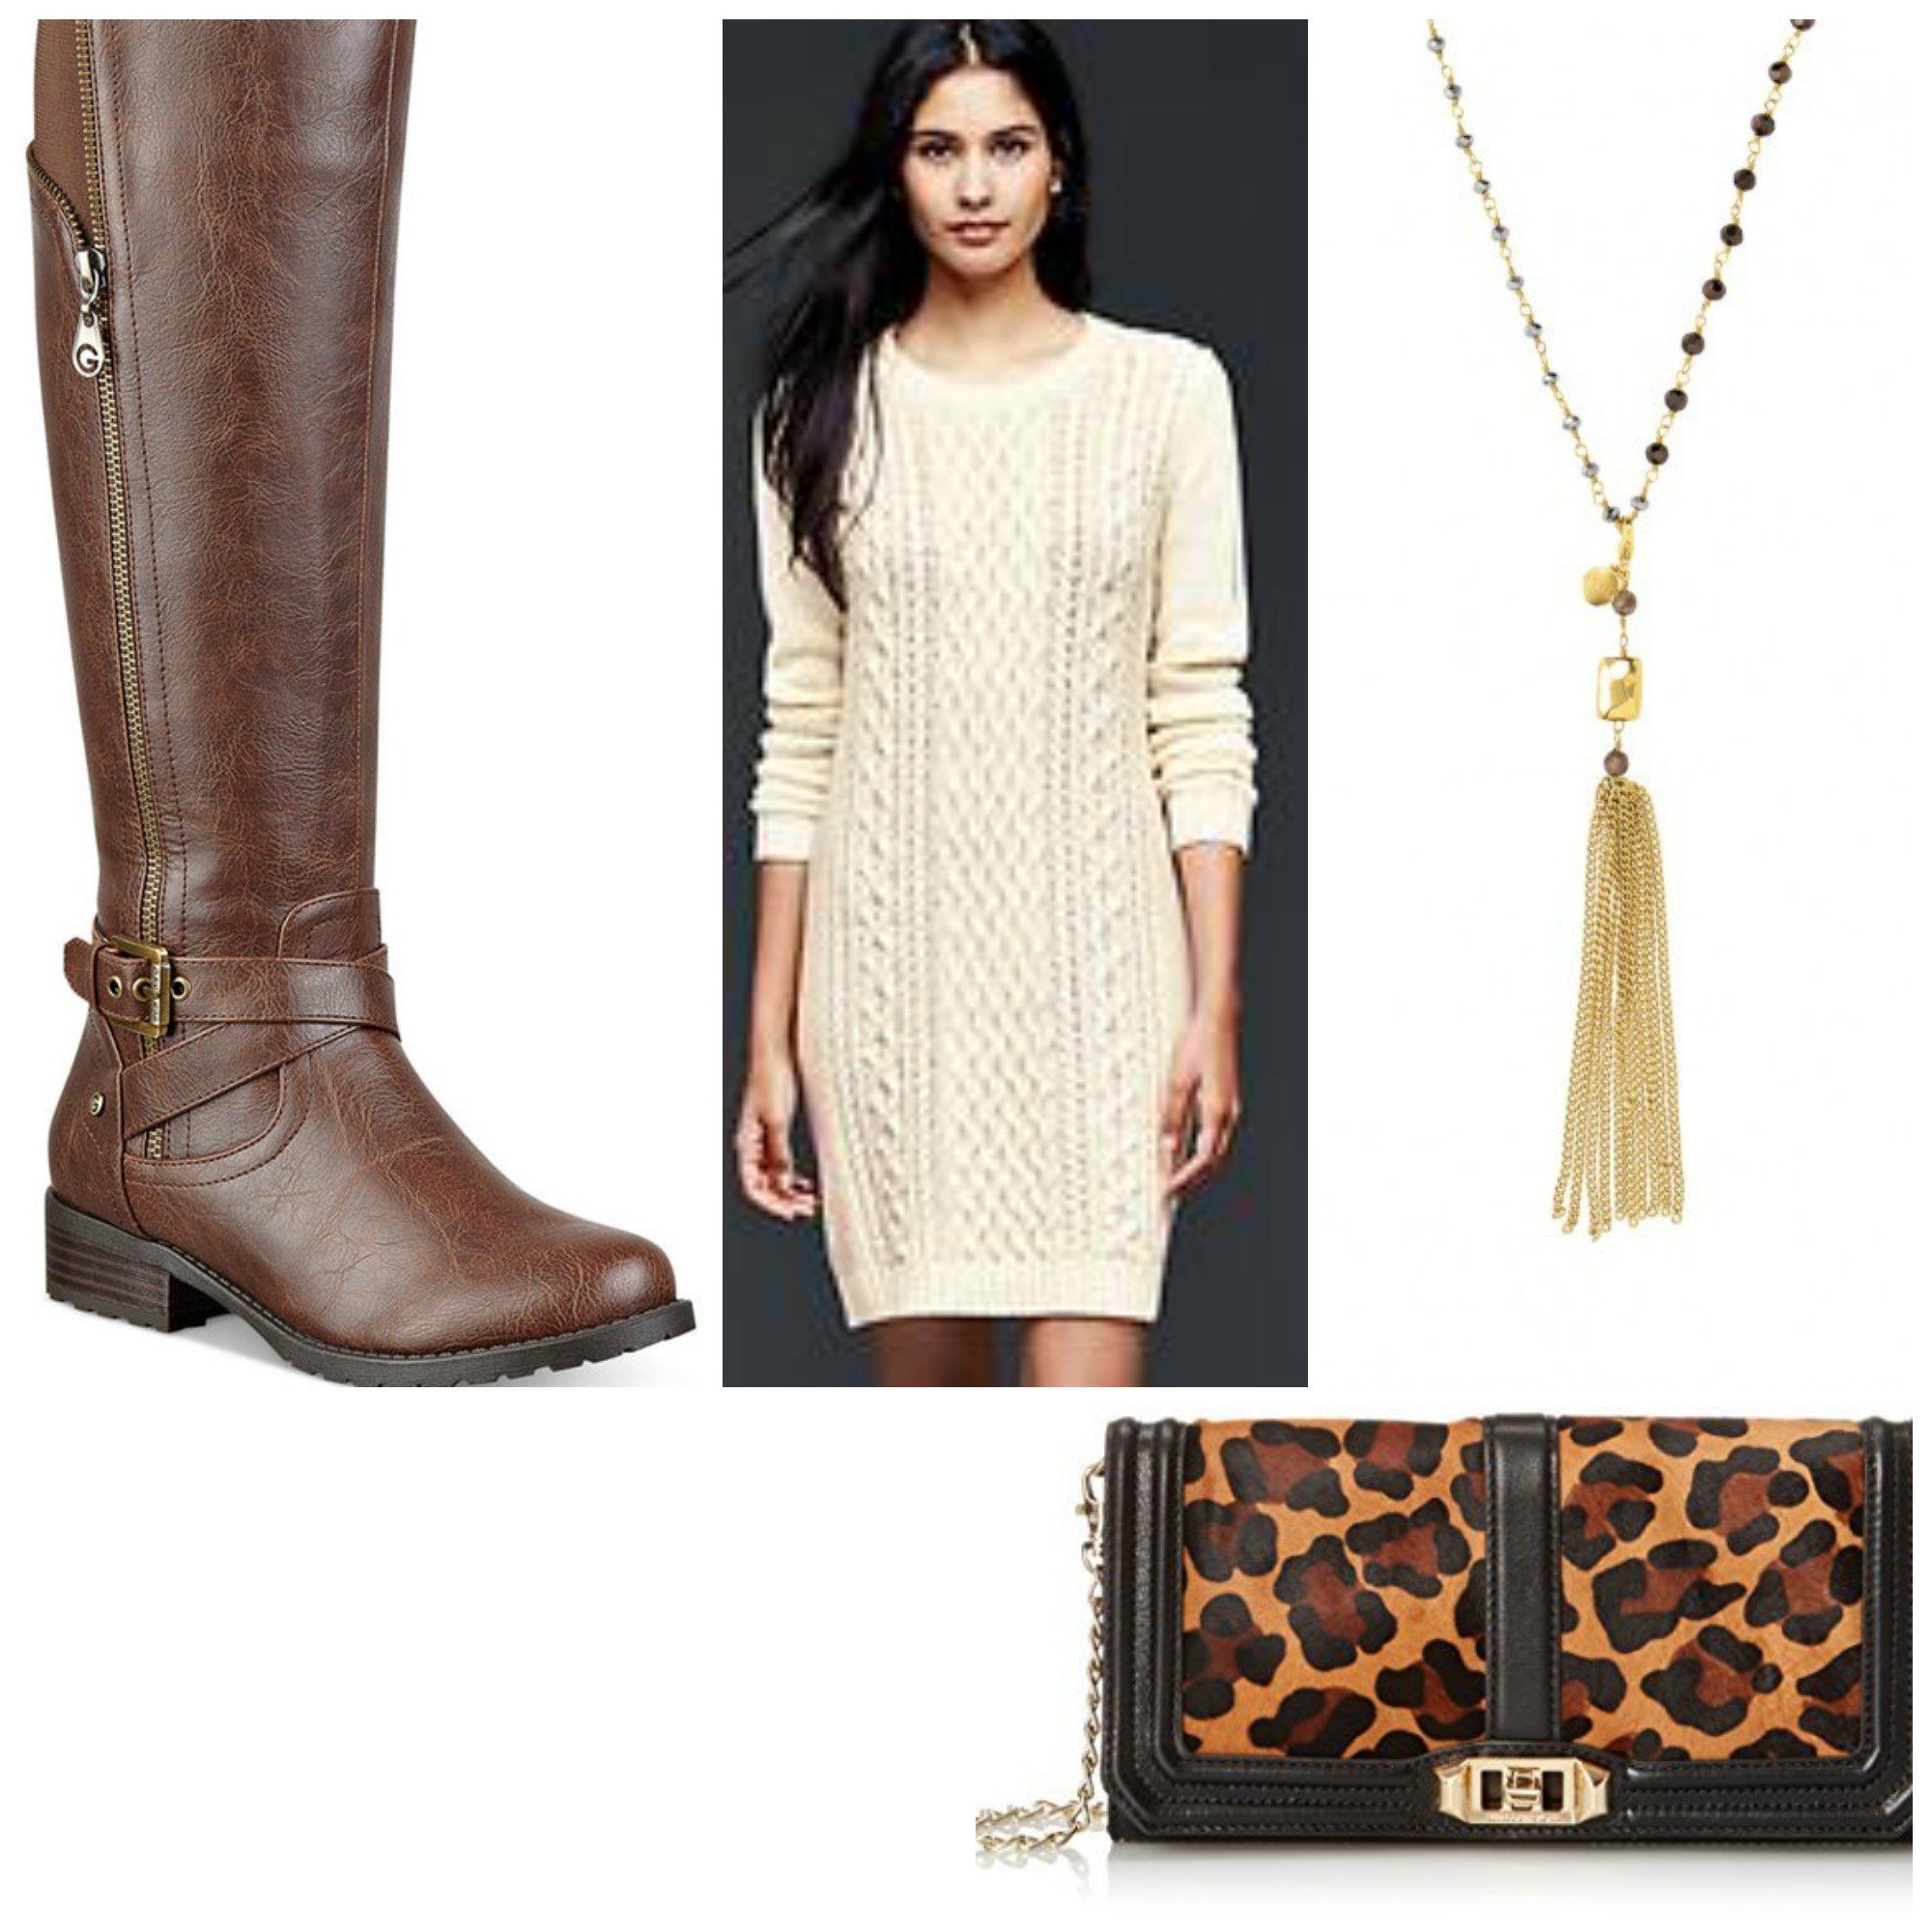 Thanksgiving Day Outfit 3 by www.mylifefromhome.com